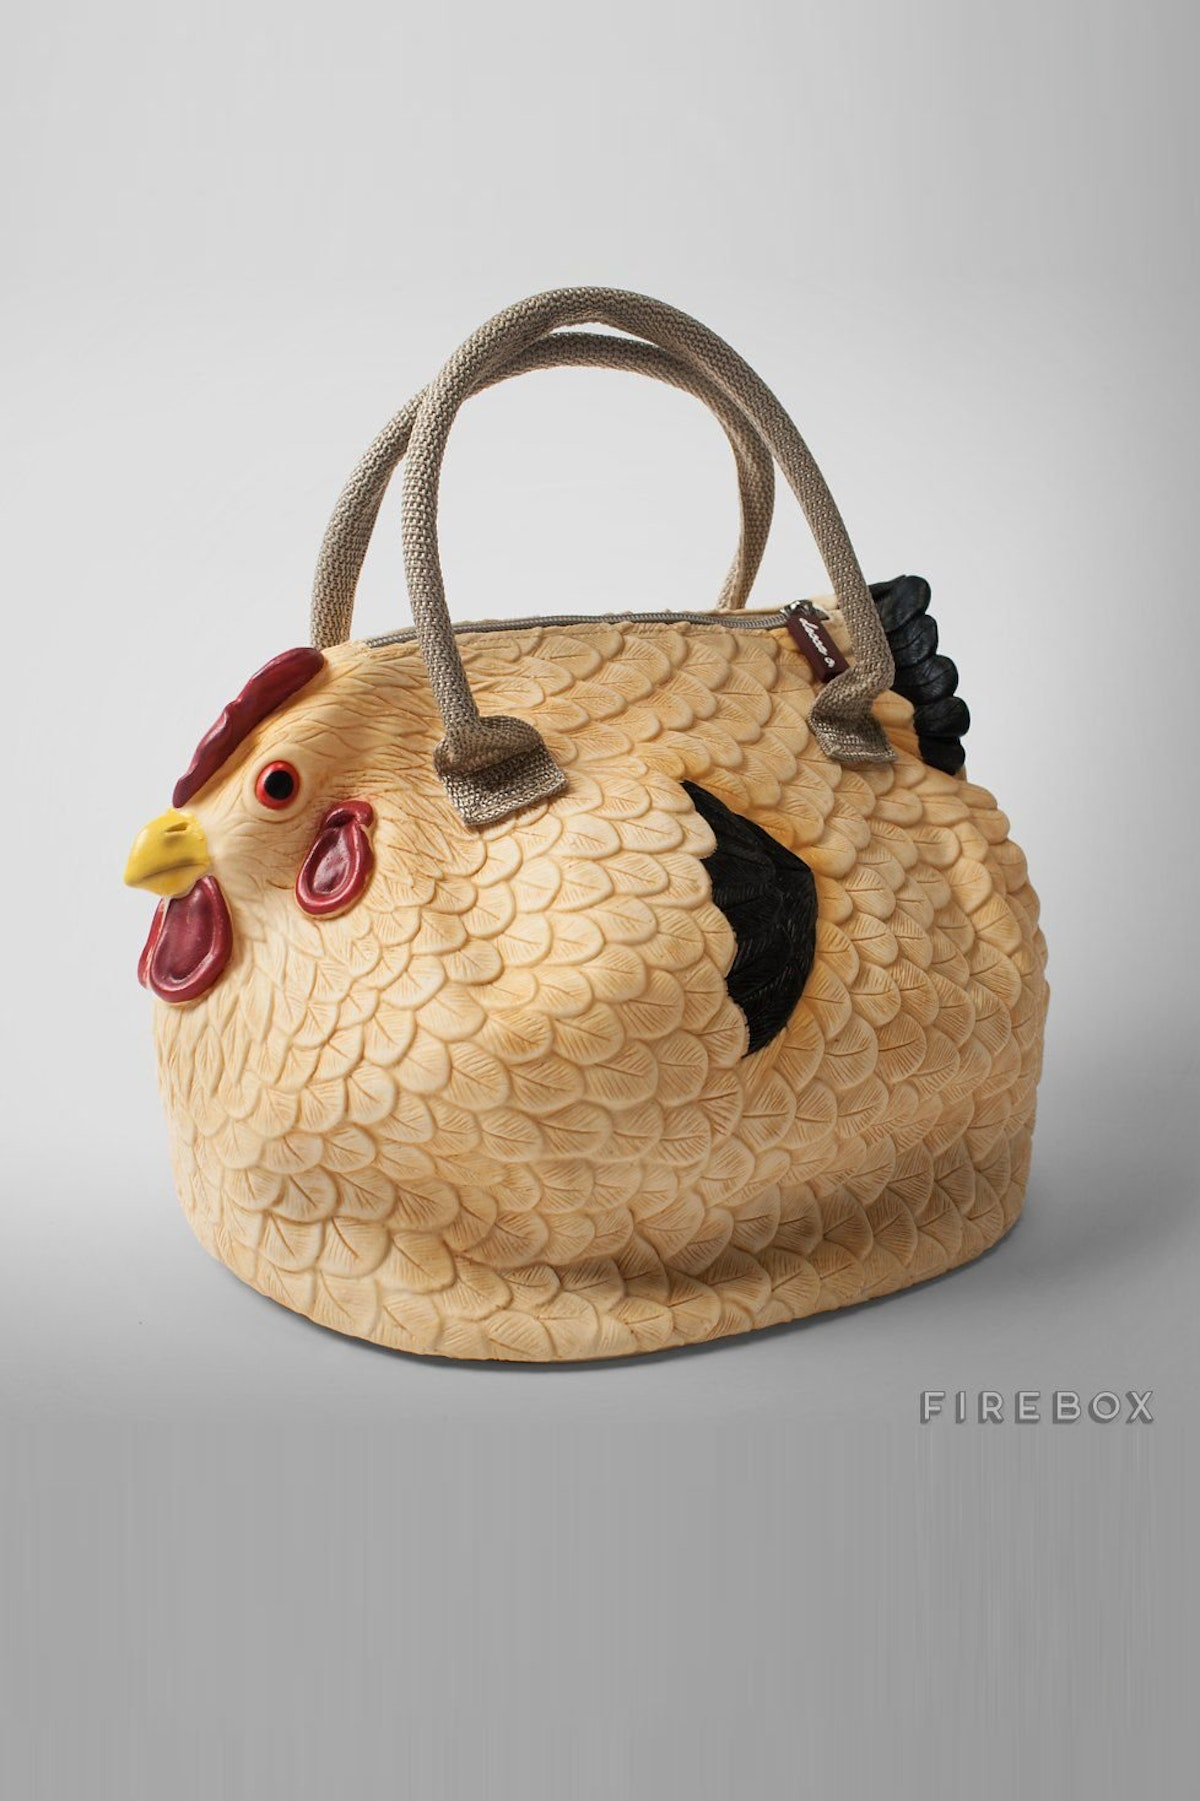 Bags that look like animals